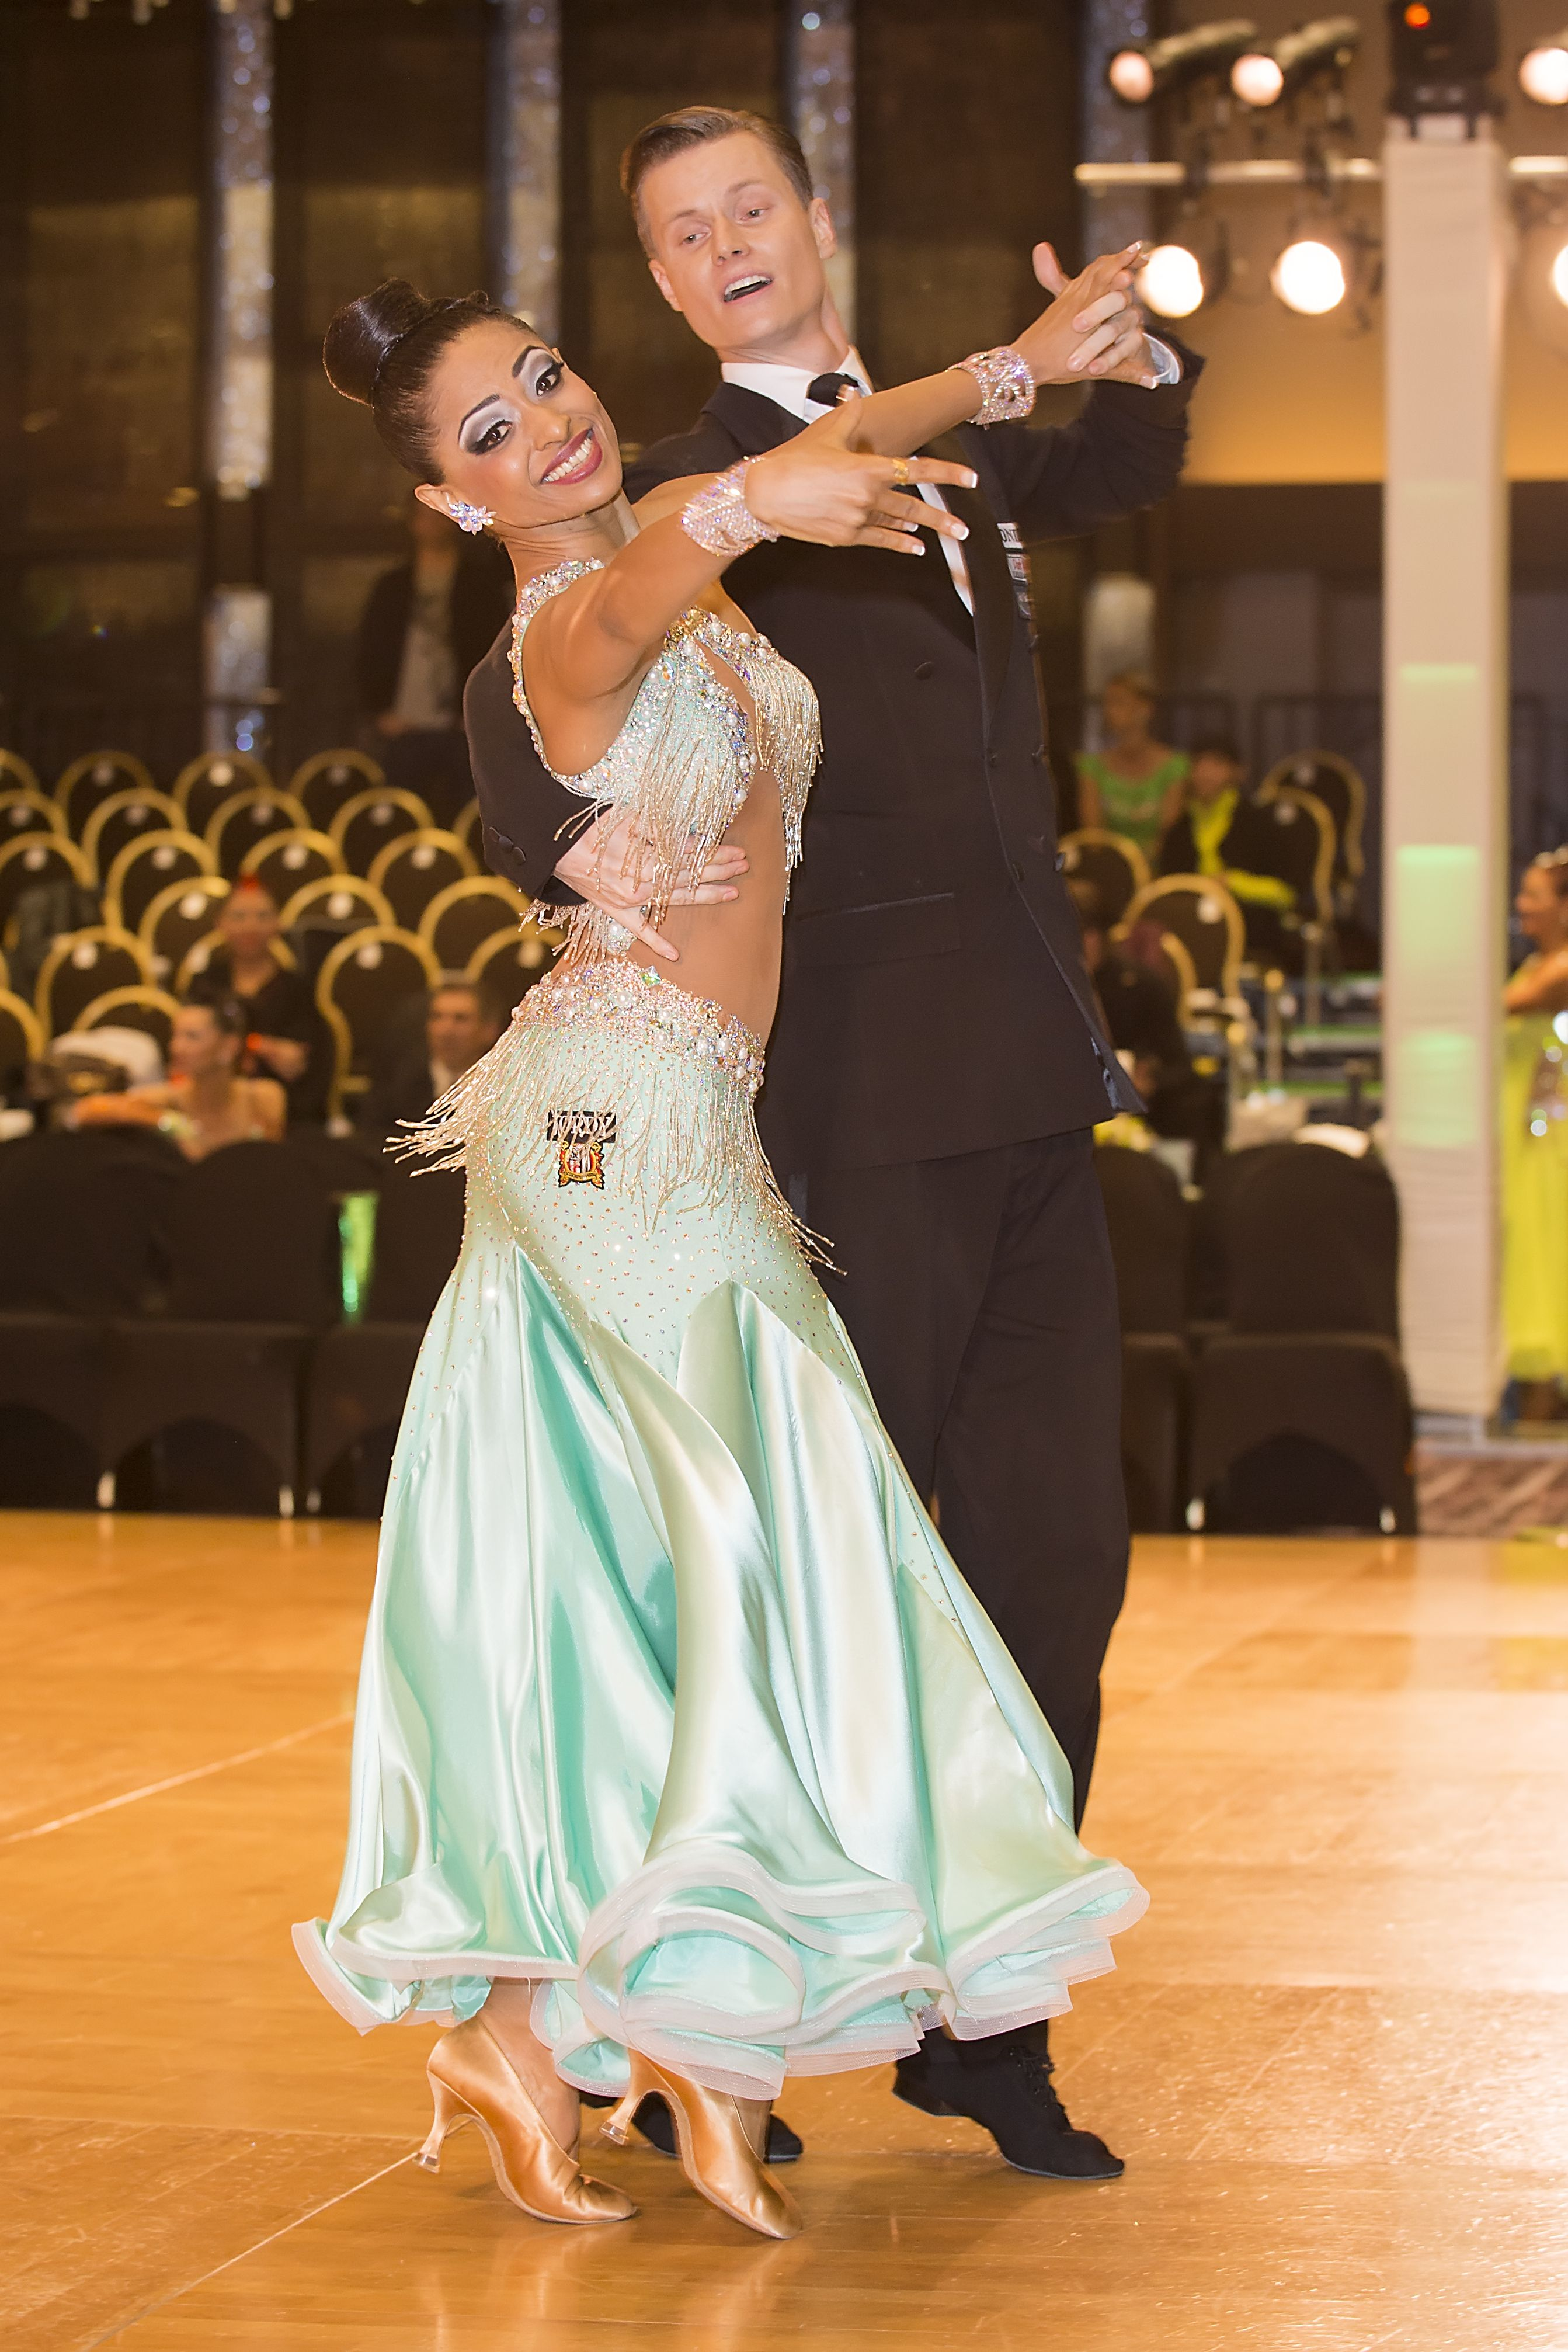 Watch Promo Video At Http Bit Ly 1lp6hrv More Info At Http Www Emeraldball Com The Emerald Ball Has It All For Dance Camp Dancesport Dance Competition